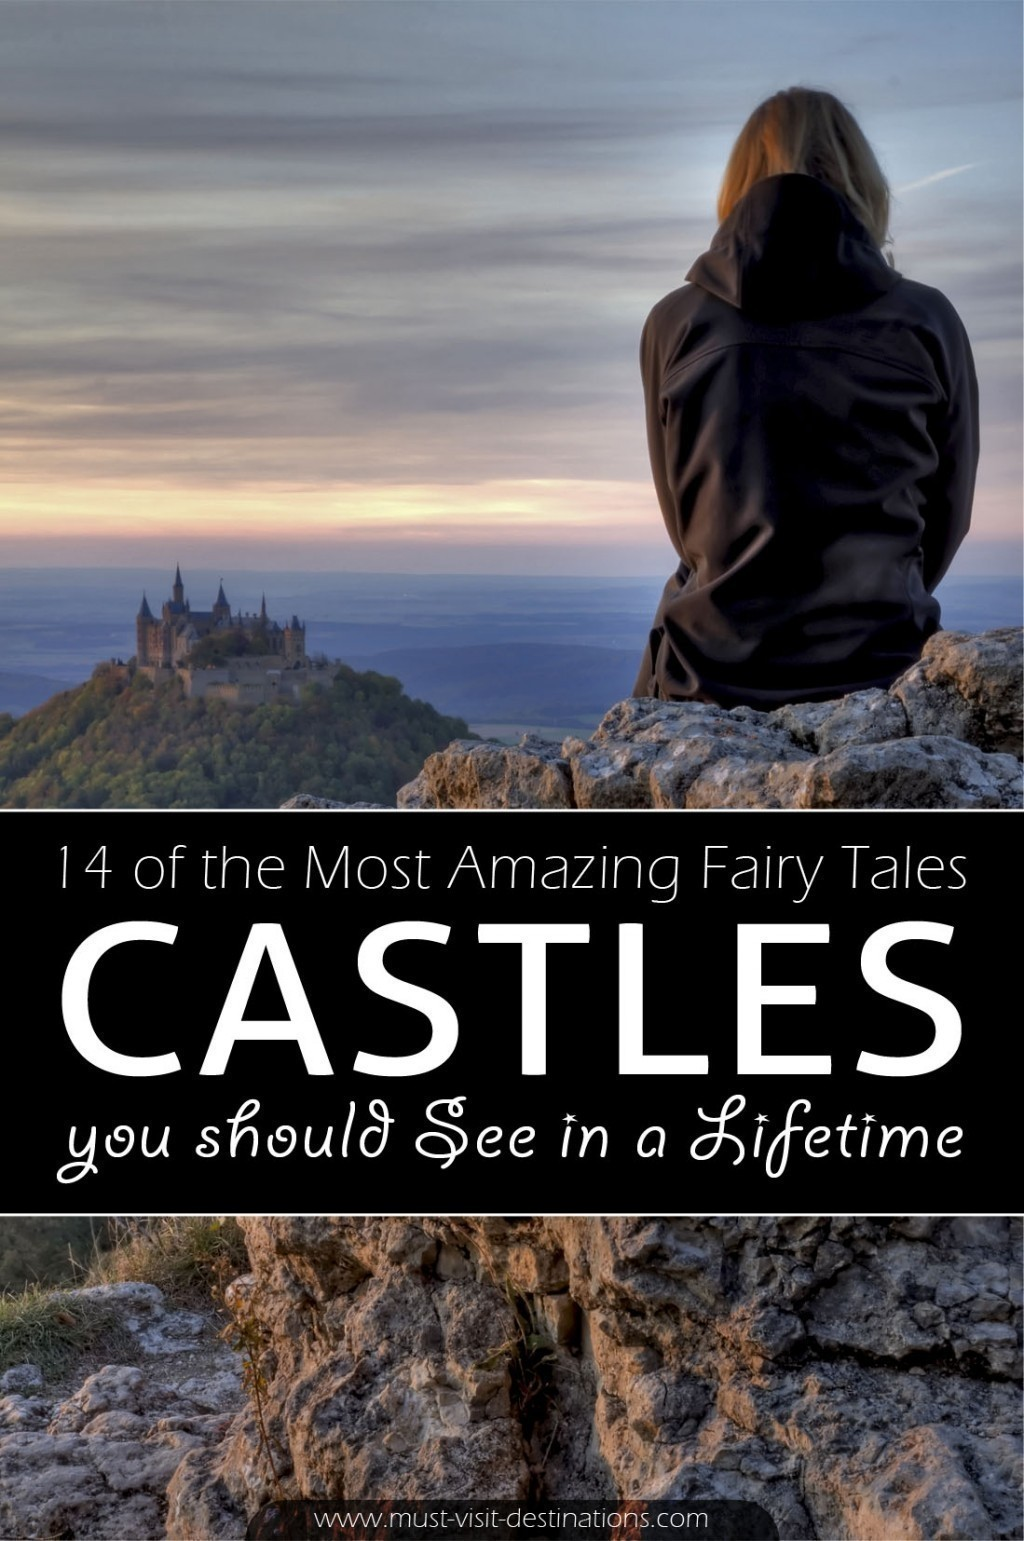 14 of the Most Amazing Fairy Tales Castles you should See in a Lifetime